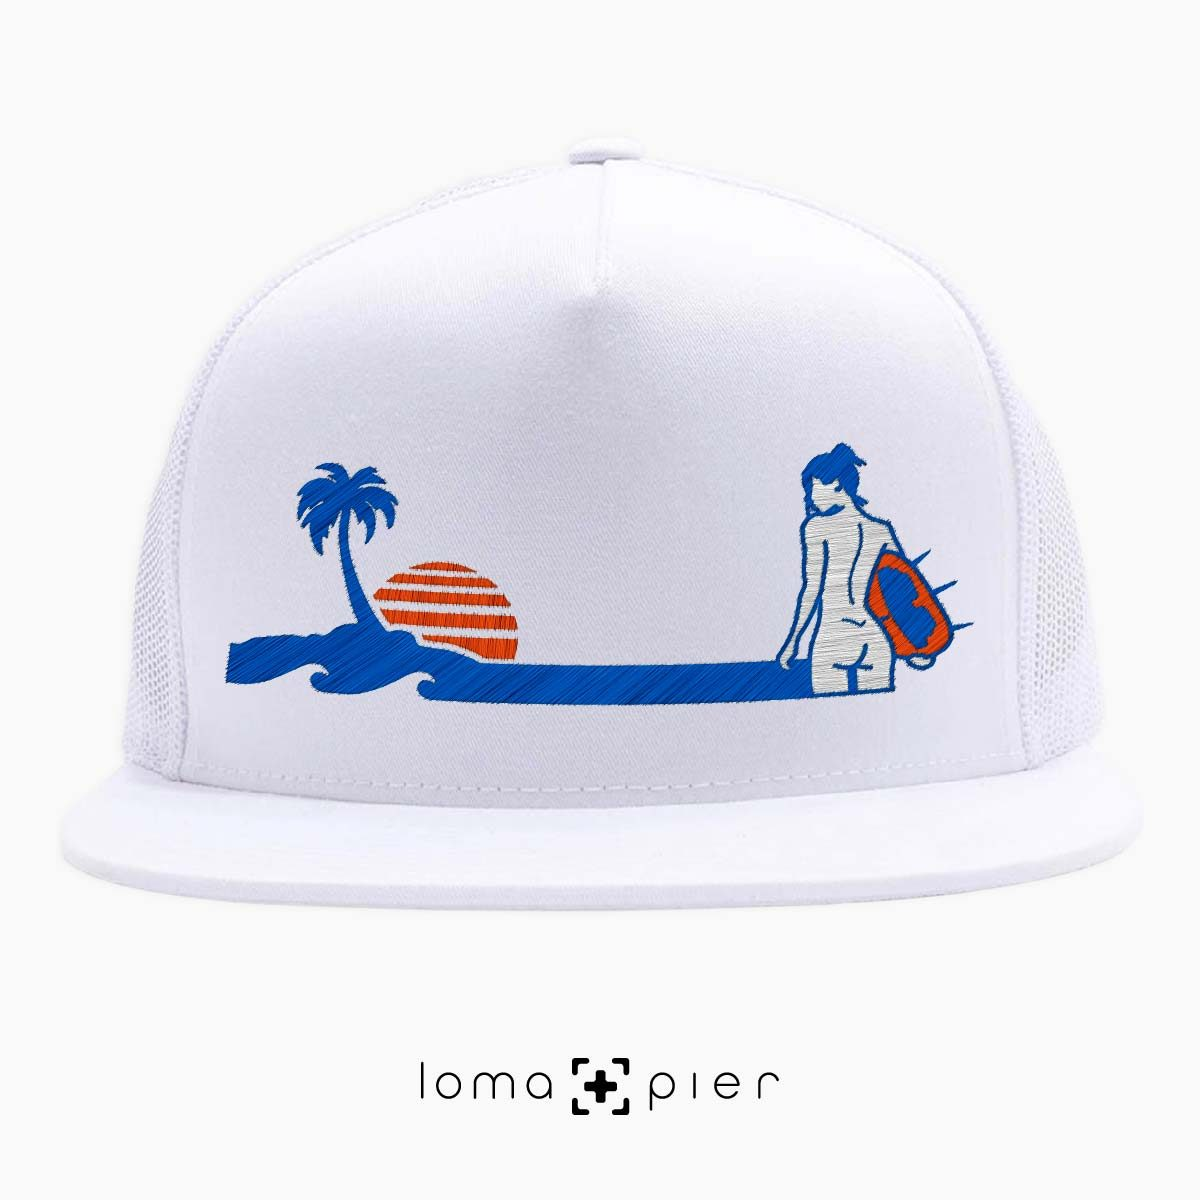 SURF NAKED hermosa beach white netback trucker hat design by KIKICUTT for loma+pier hat store